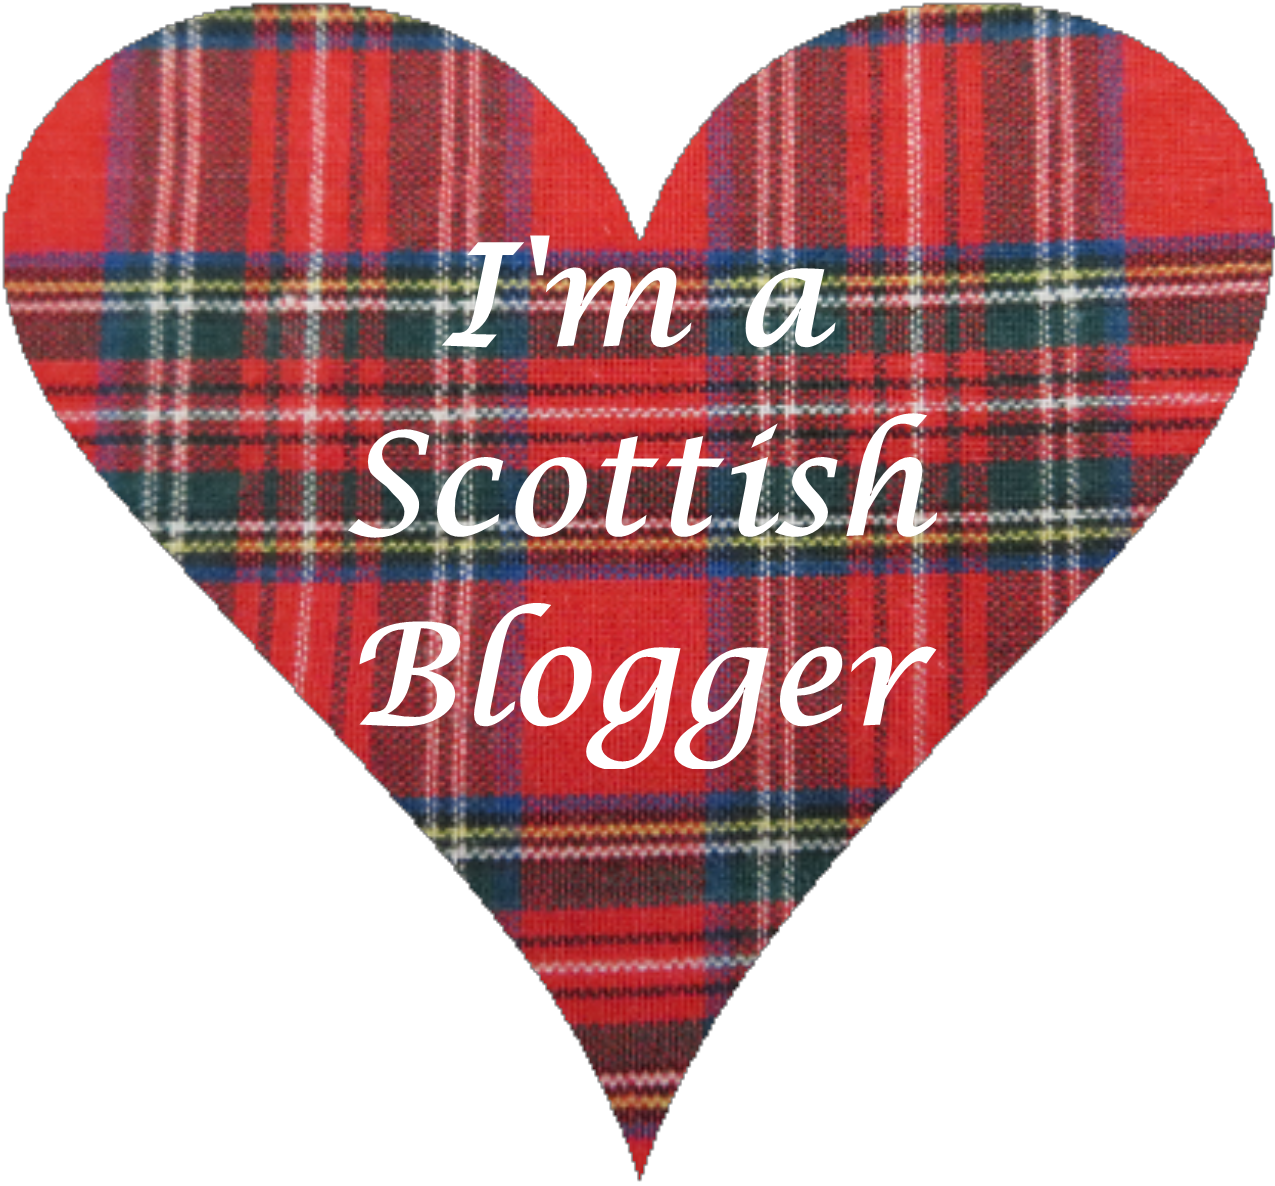 Scottish Blogger